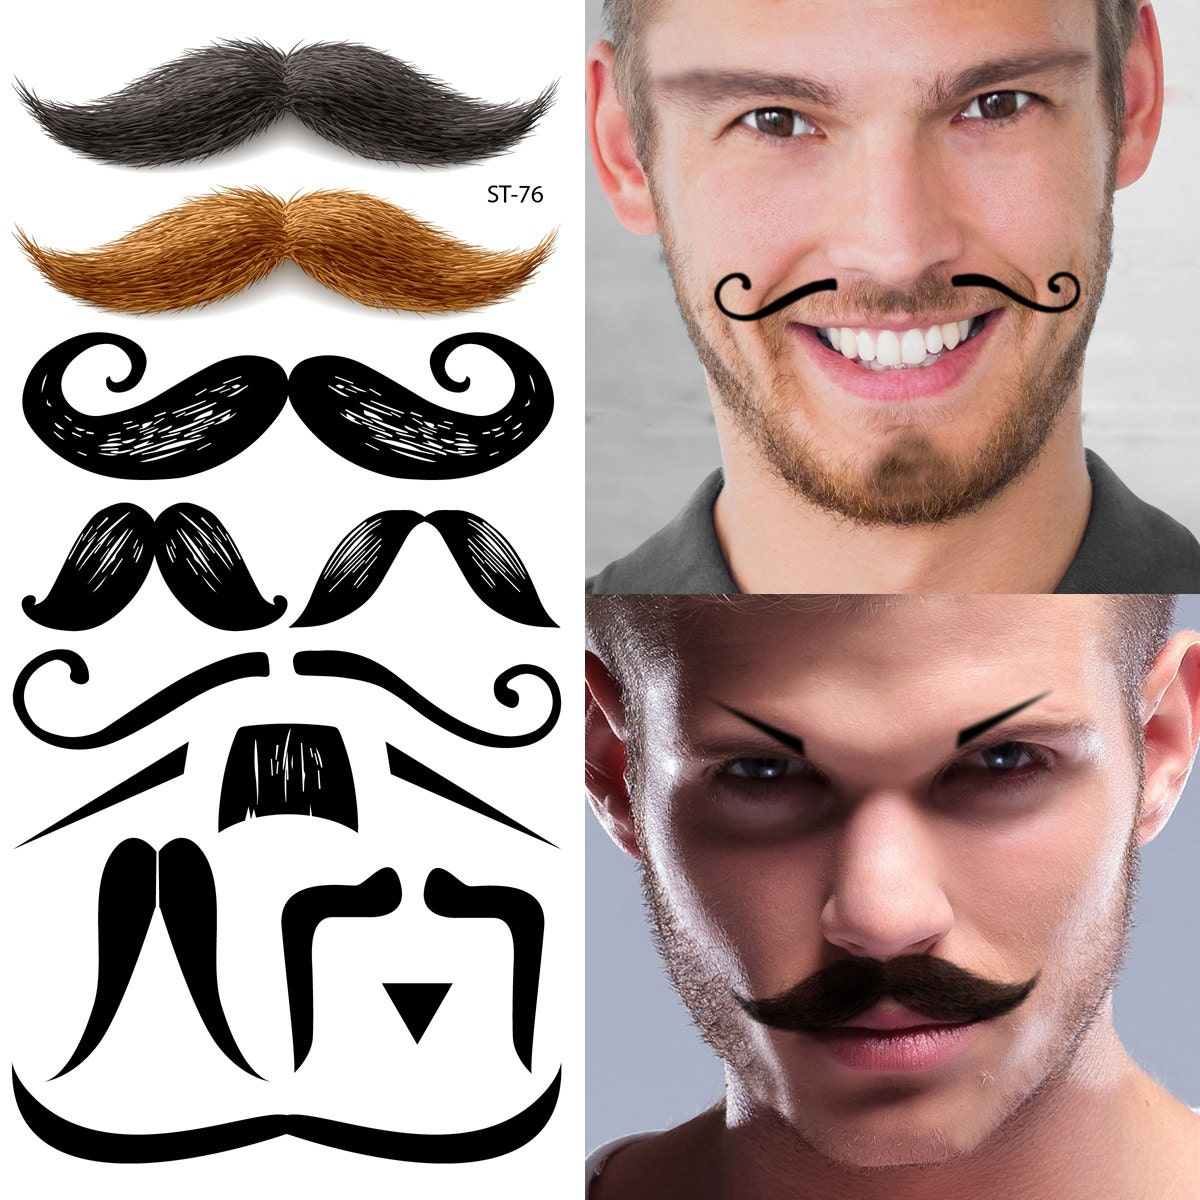 Supperb temporary tattoos mustache tattoos set for Mustache temporary tattoos